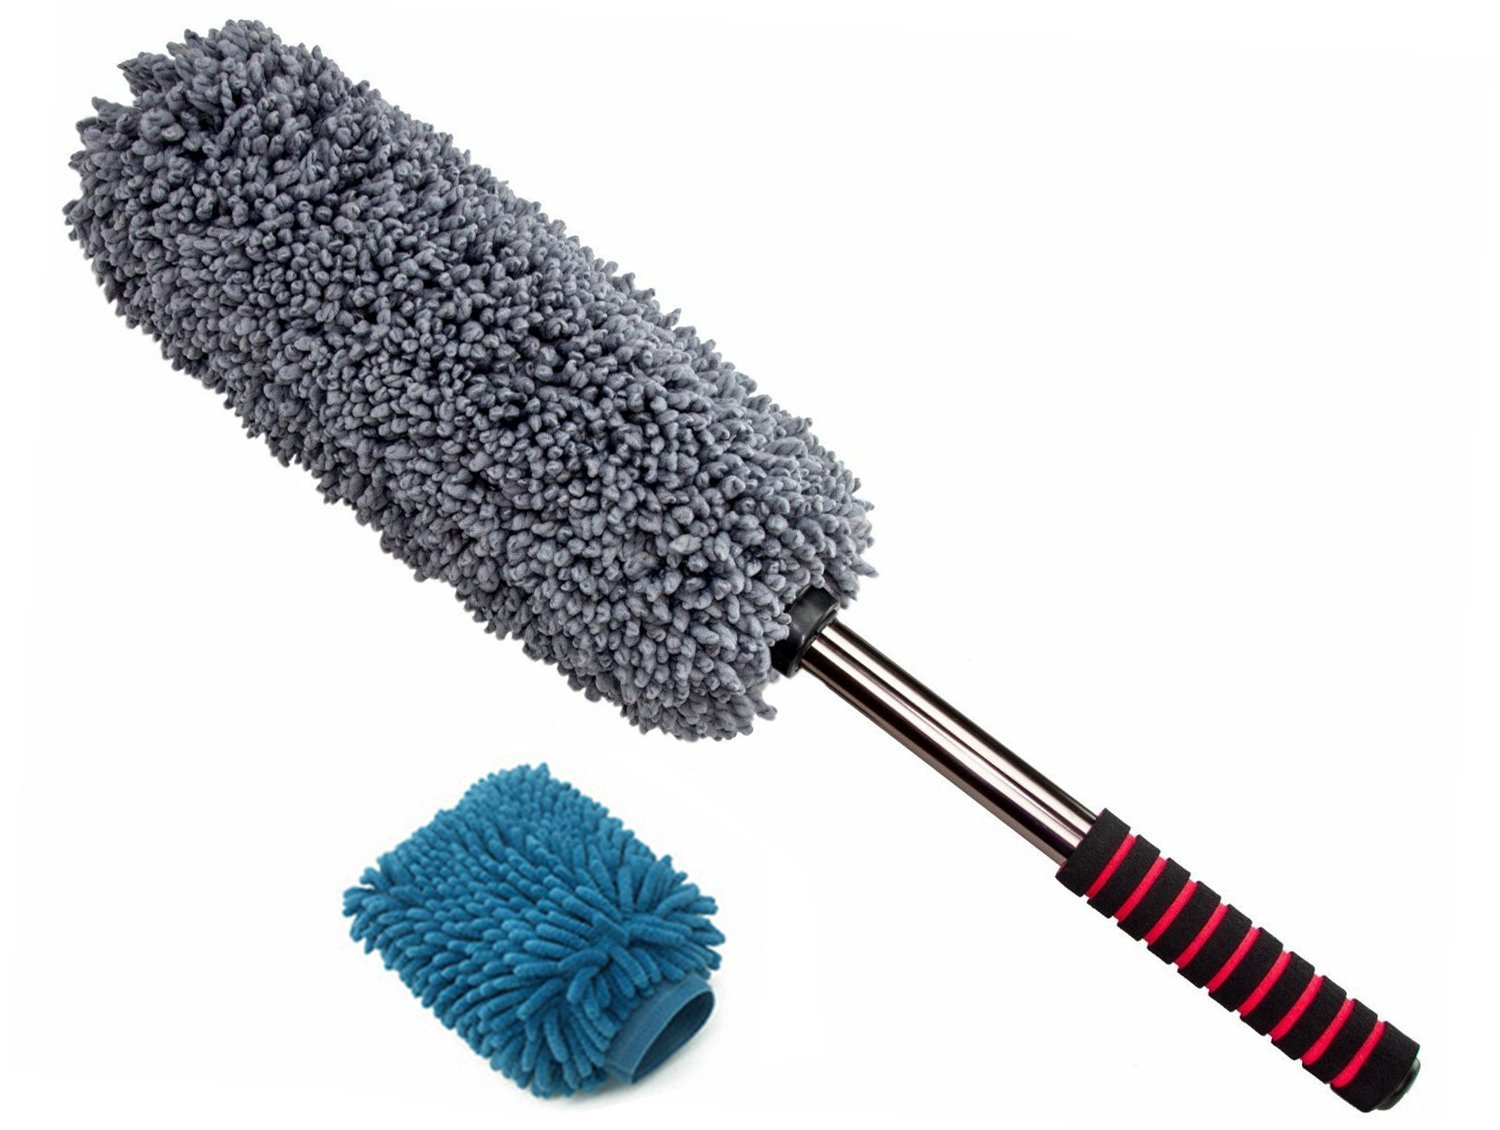 Upgrade Ultimate Car Duster - Microfiber Duster - Strong Decontamination Own Wax - Lint - Unbreakable Extendable Soft Handle